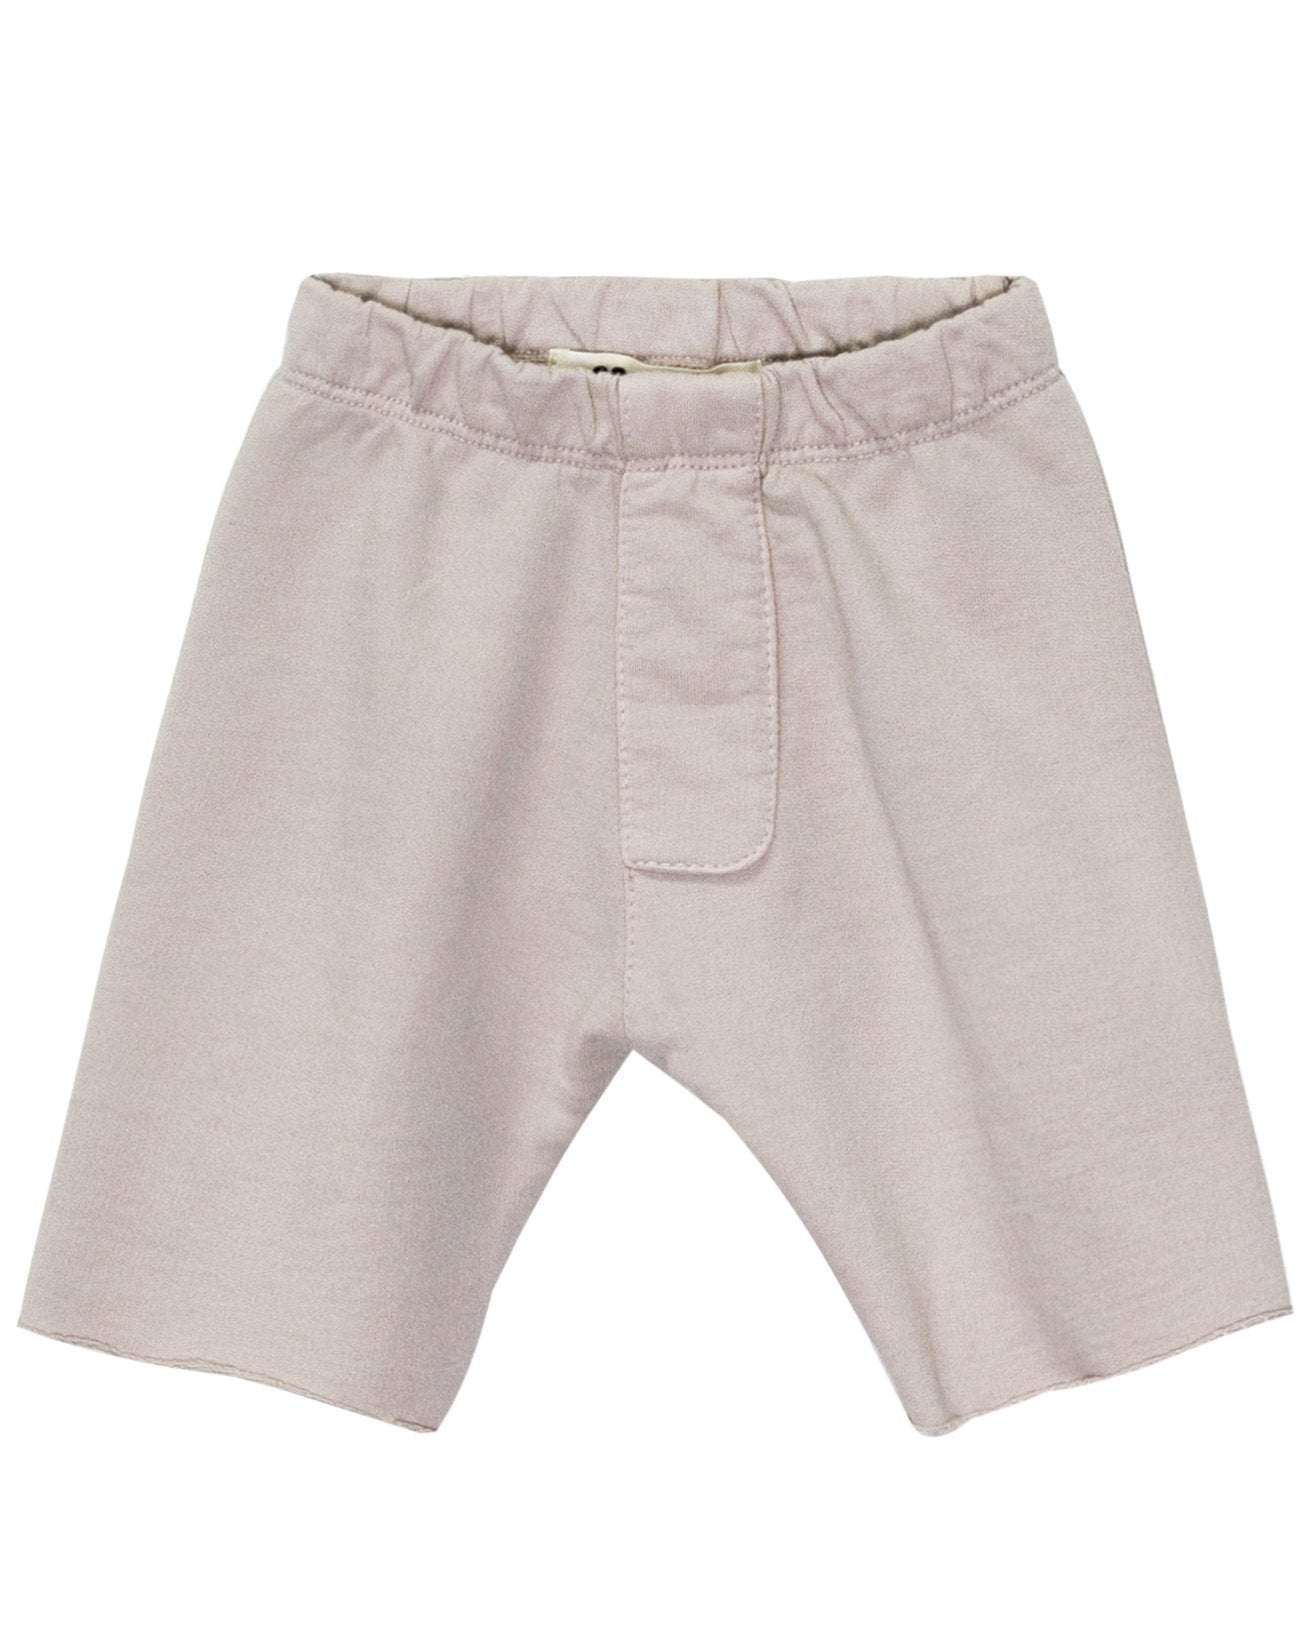 Little go gently nation girl trouser short in sandstone